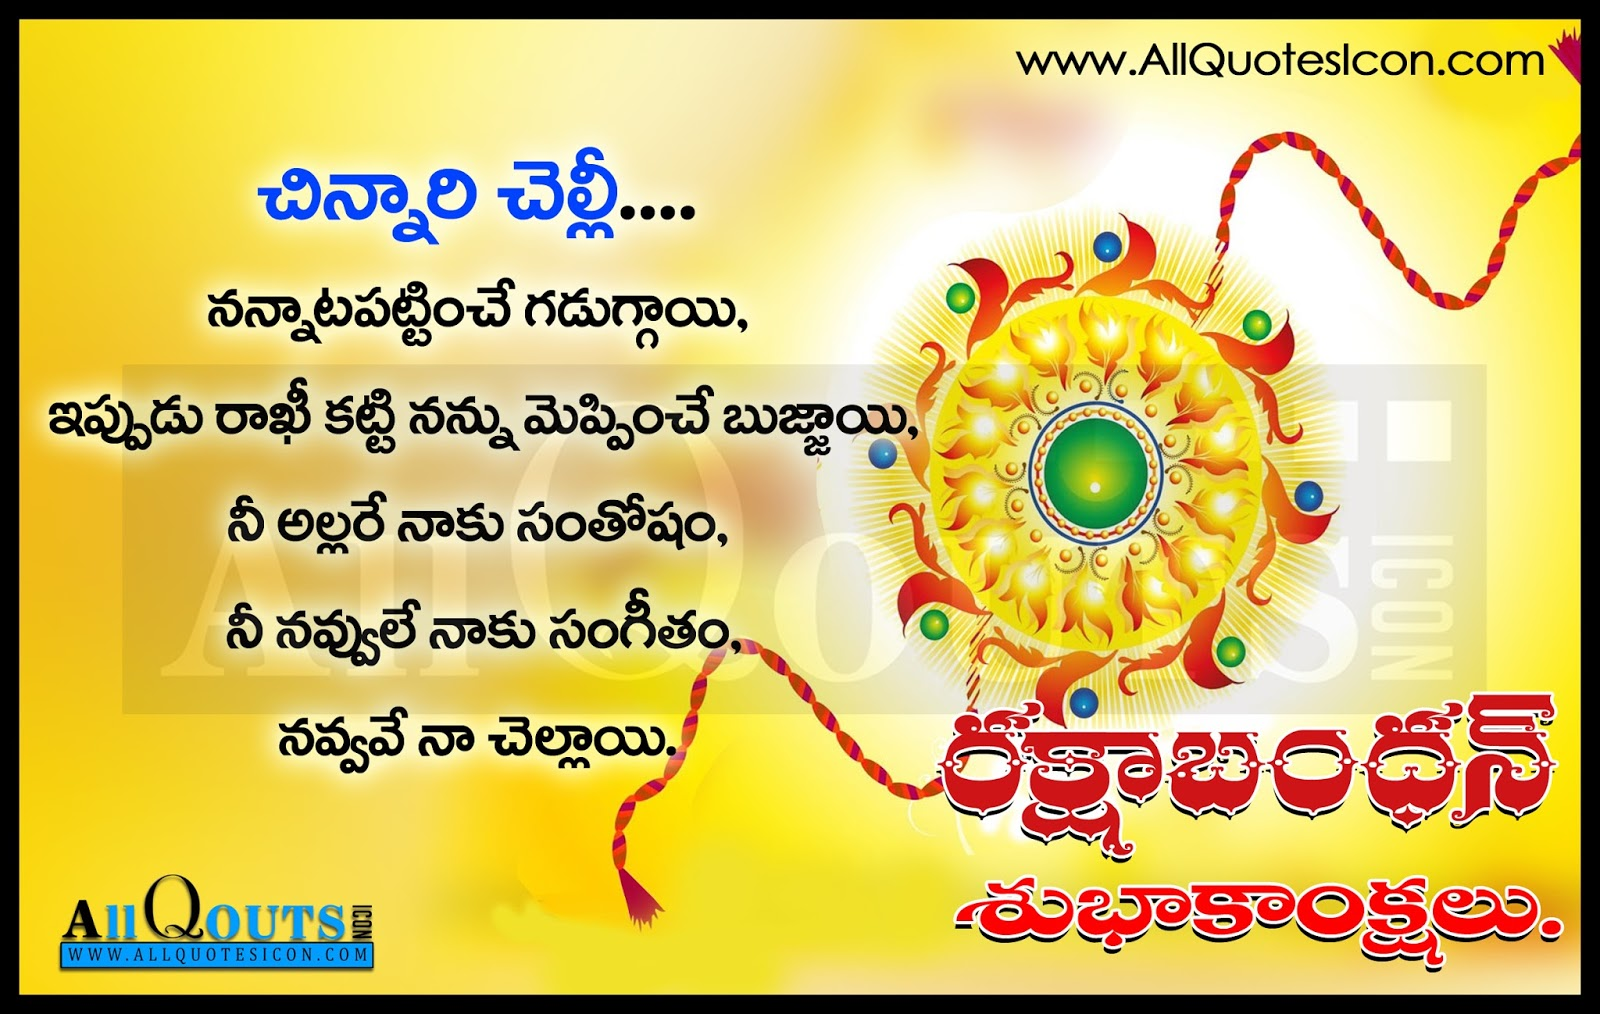 Happy Raksha Bandhan Greetings Cards Images Pictures in Marathi & Telugu